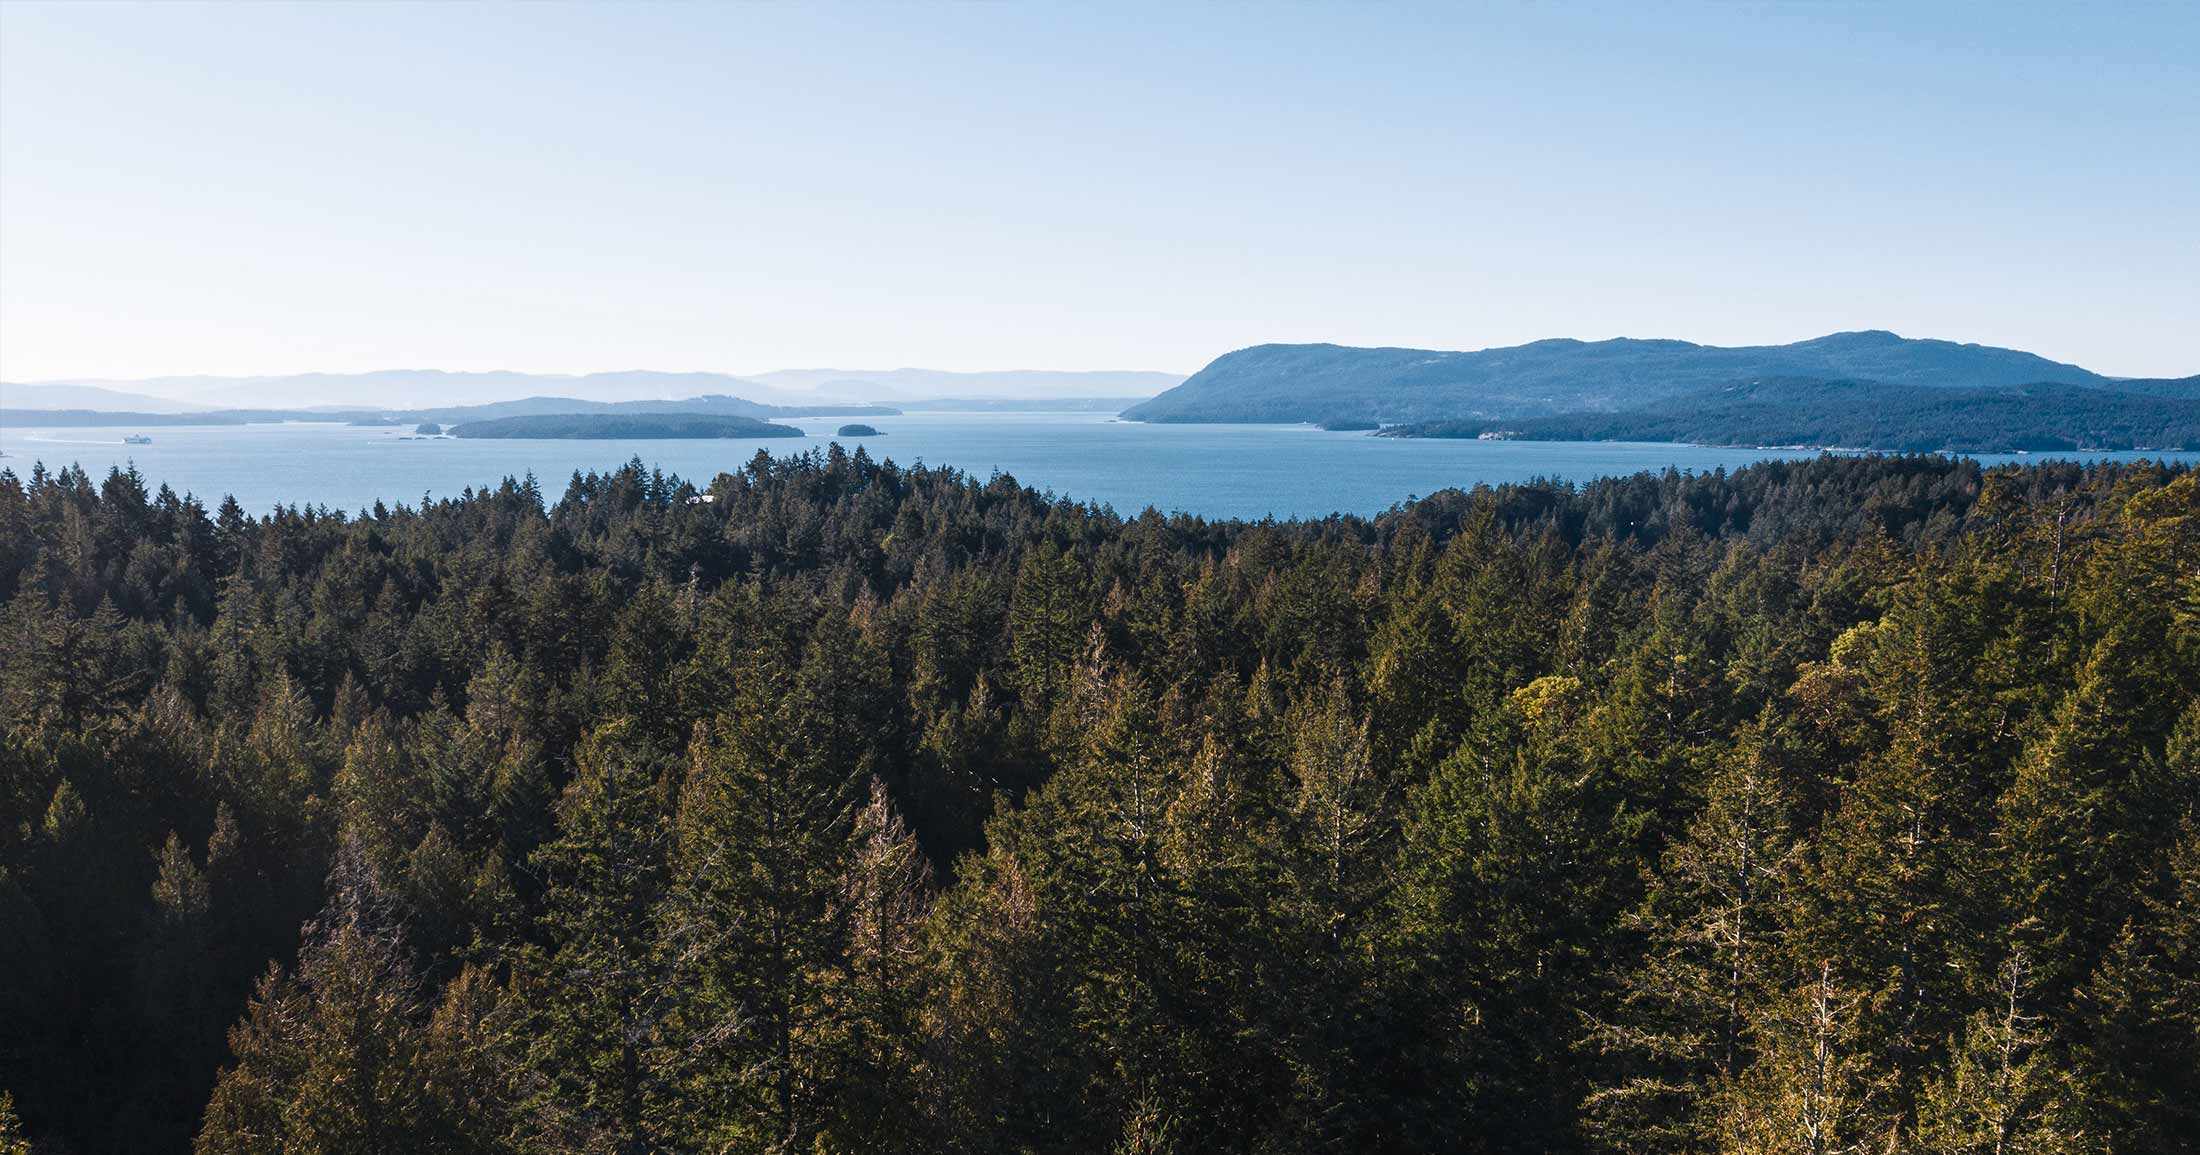 Drone photo of an intact forest with the ocean in the background on a sunny day.